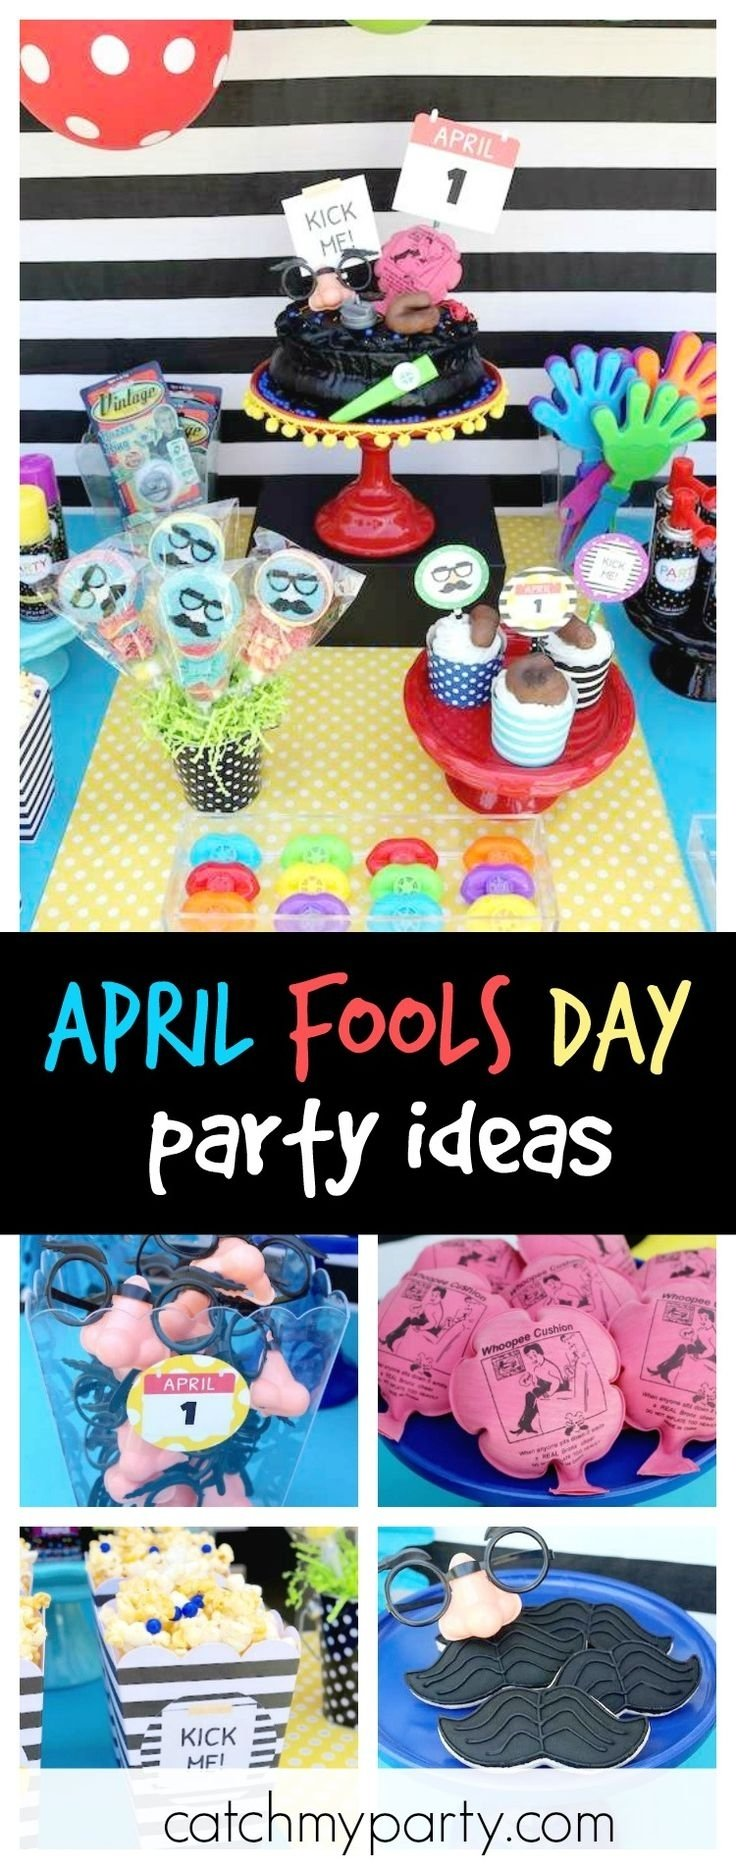 16 best april fools day party ideas images on pinterest | april